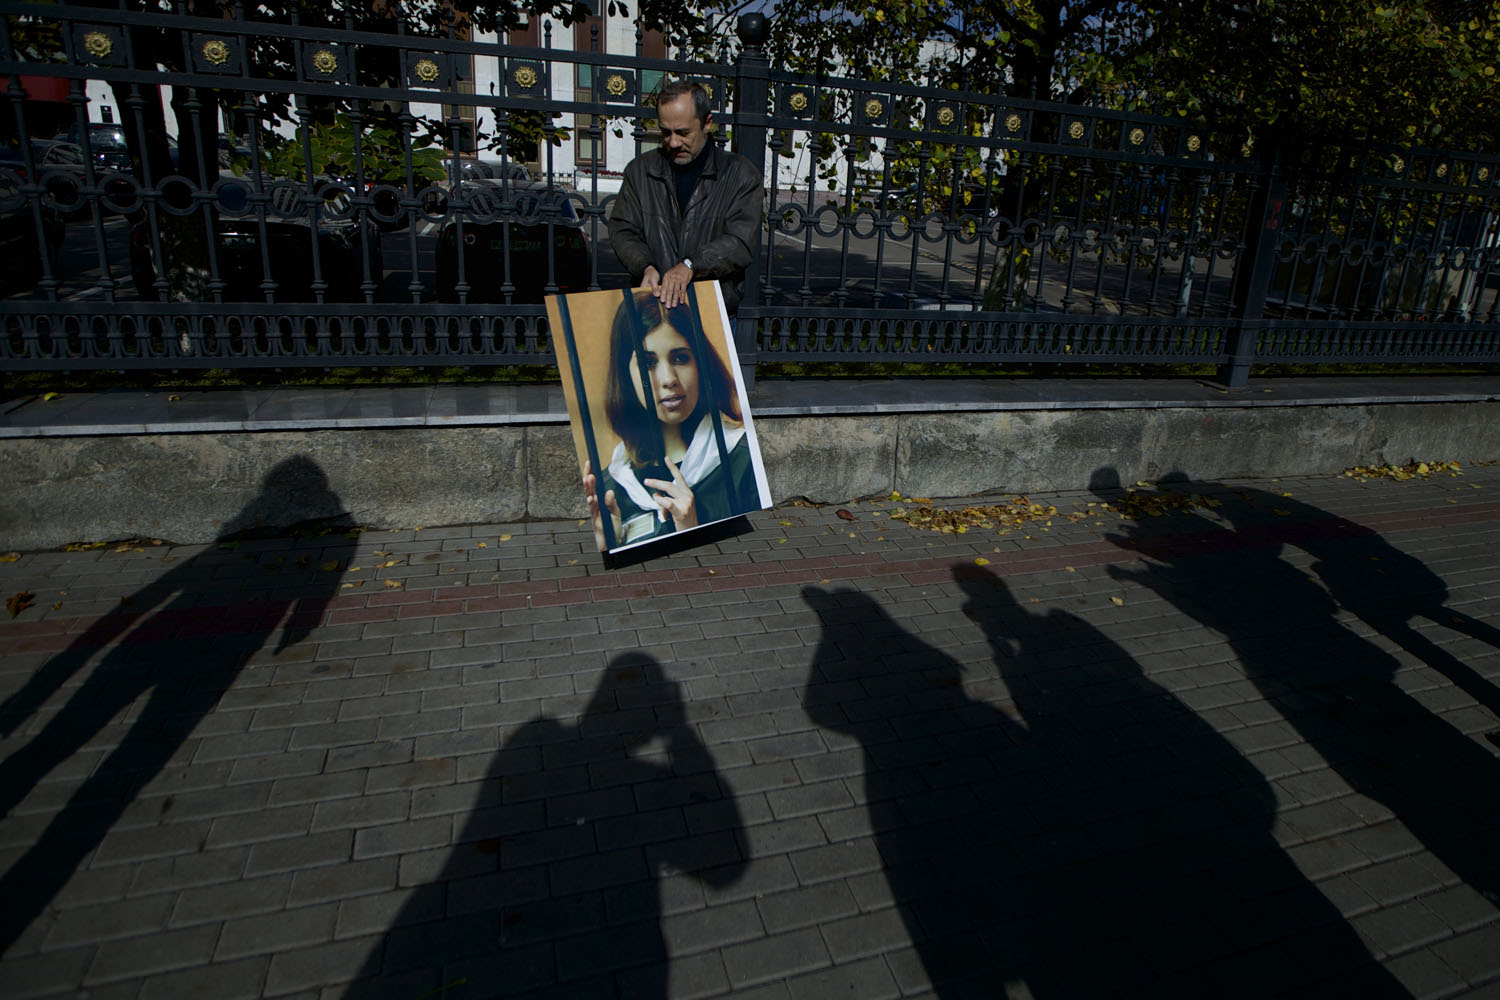 Sept. 25, 2013. Russian journalist Alexander Podrabinek holds a portrait of jailed Pussy Riot punk group member Nadezhda Tolokonnikova, with shadows of reporters in front, during a protest outside of the Federal Prison Administration headquarter in Moscow.